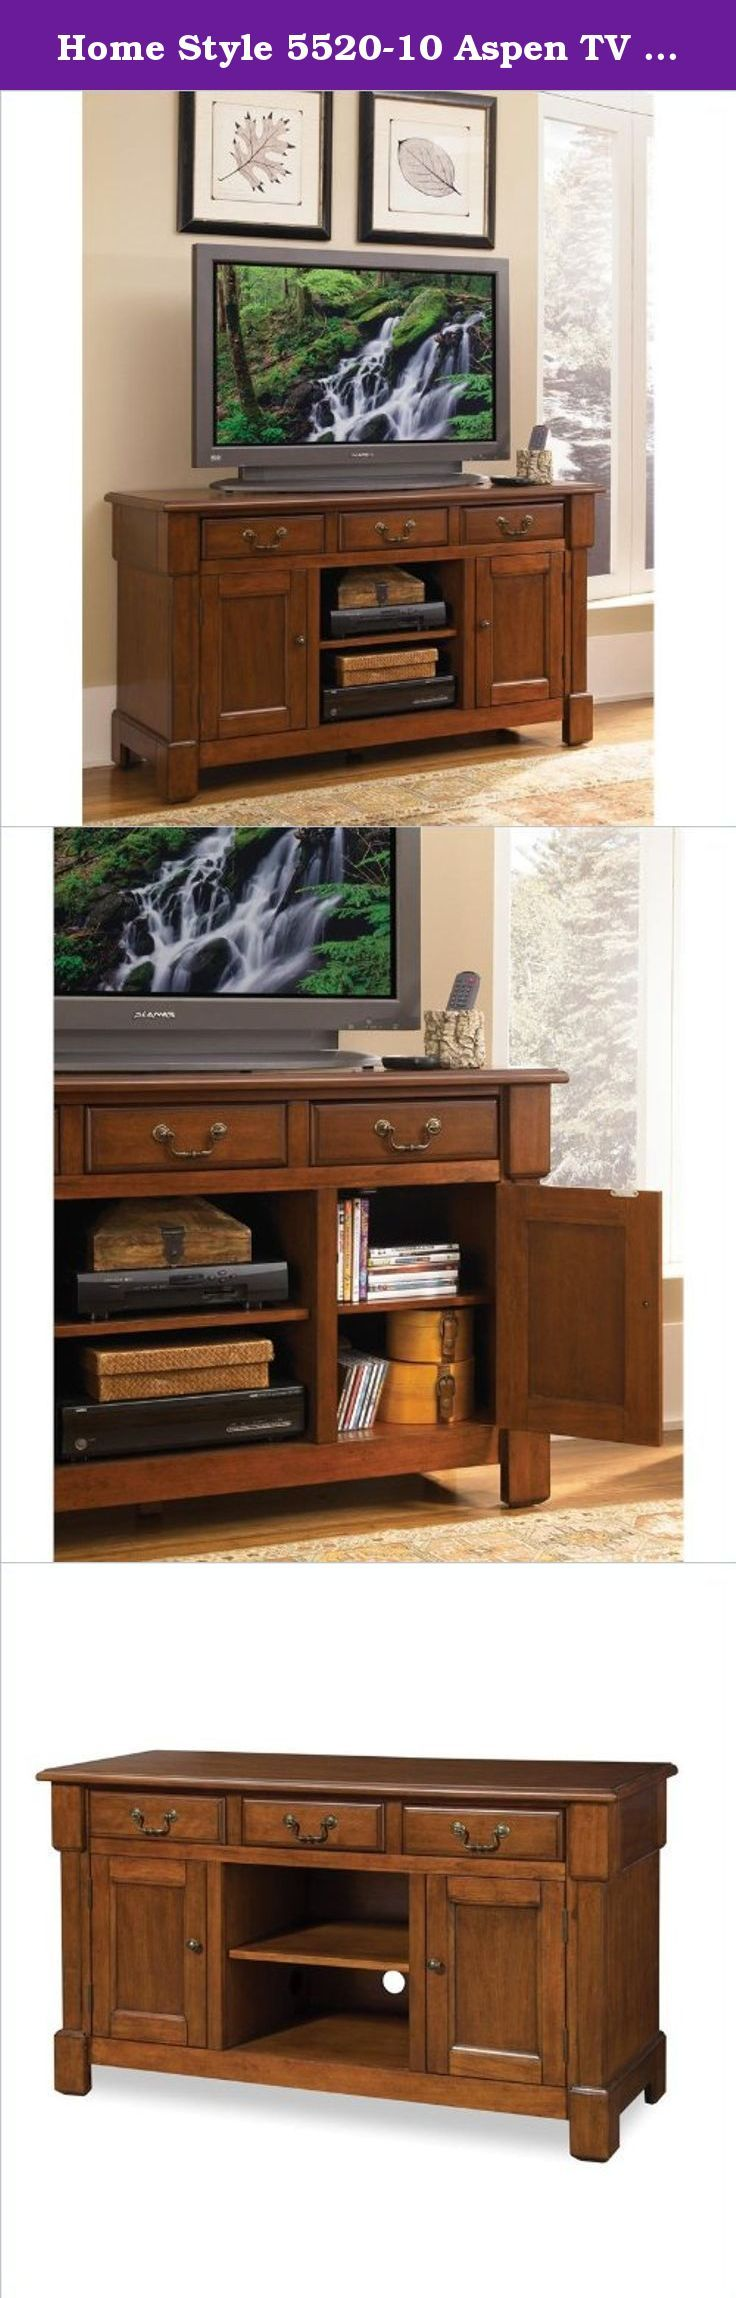 Home Style 5520-10 Aspen TV Credenza Stand, Rustic Cherry. This aspen TV credenza stand provides generous storage in the center, cable accessible and storage compartment with an adjustable shelf. Made of poplar solids and cherry veneers which are warmed with a multi-step rustic cherry finish. While recessed door panels, a profiled edge top, bold molding detail and Marlborough styled feet draw the eye deeper in. It has two storage cabinets, each with an adjustable shelf and two storage...